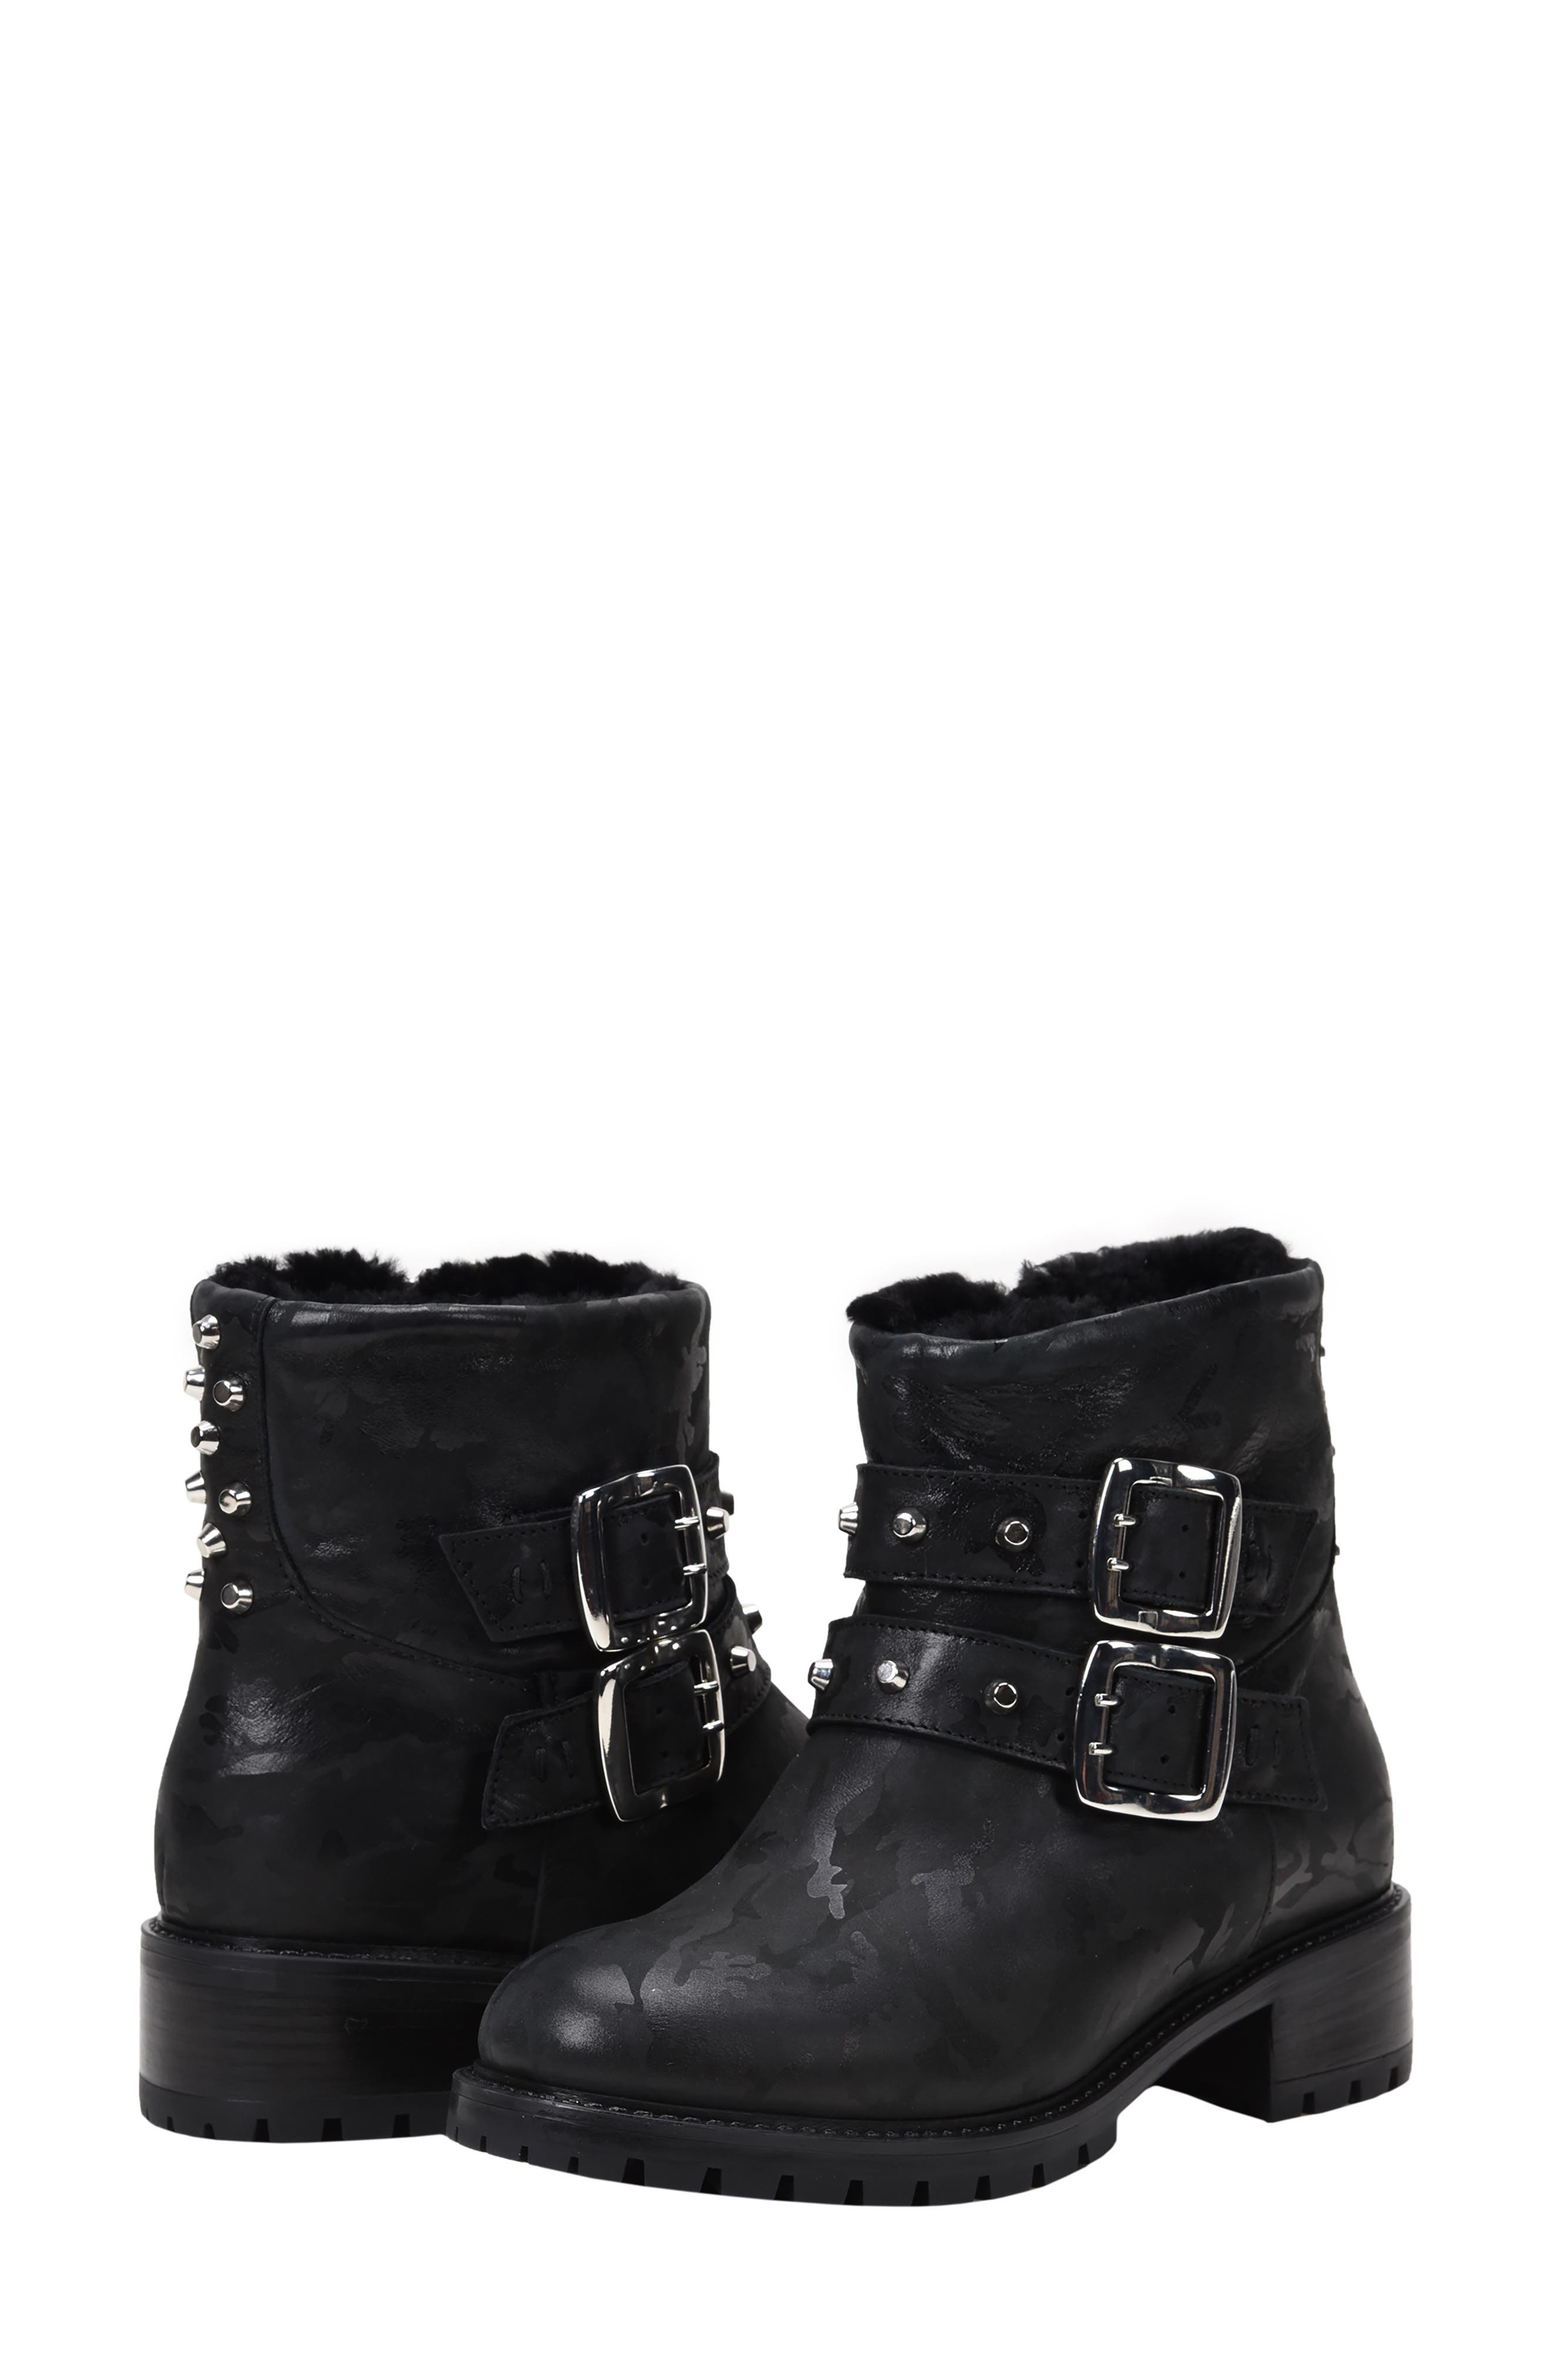 Stefana SP Genuine Shearling Lined Waterproof Bootie,                             Alternate thumbnail 8, color,                             BLACK CAMO LEATHER